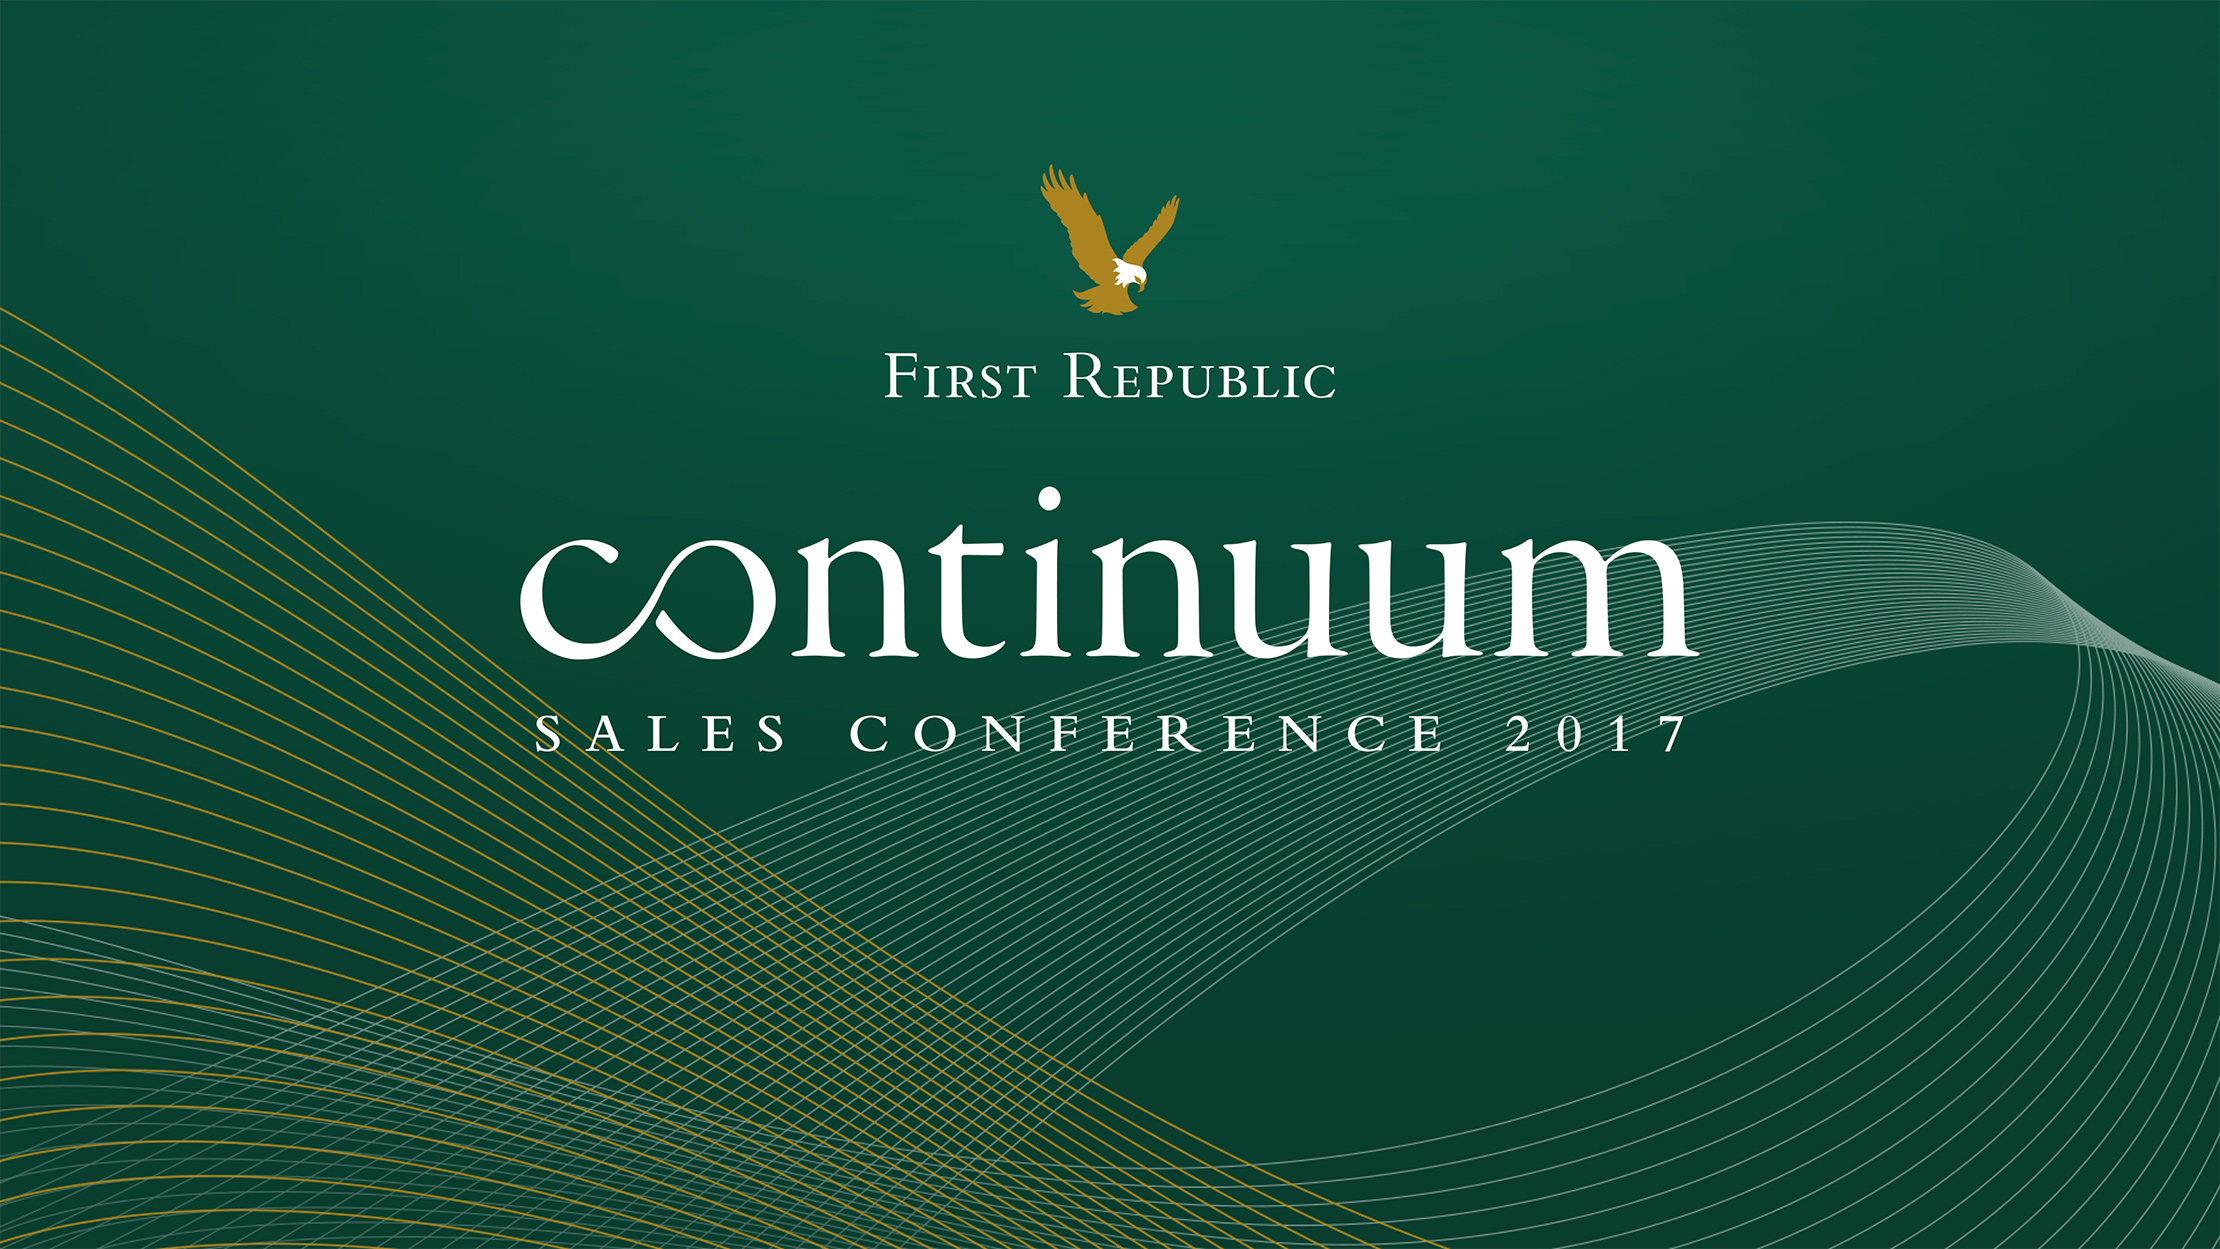 CONTINUUM: SALES CONFERENCE